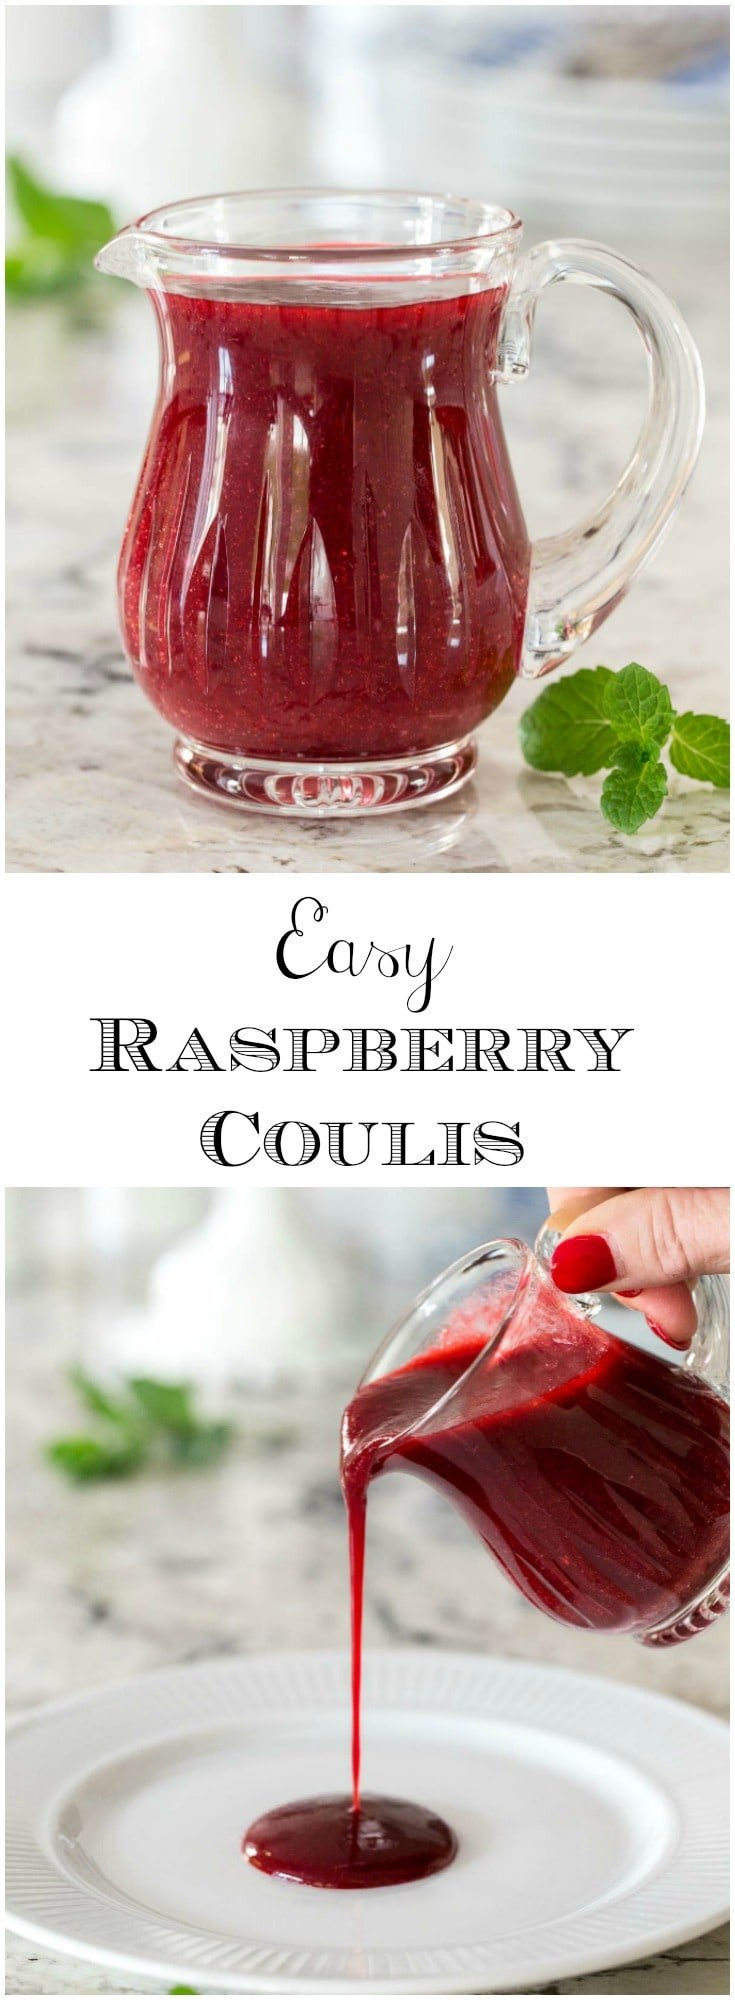 Just a fancy name for a delicious, super versatile raspberry sauce, this Easy Raspberry Coulis pairs fabulously with chocolate and a zillion other desserts!  #raspberrycoulis, #raspberrysauce, #easyraspberrysauce